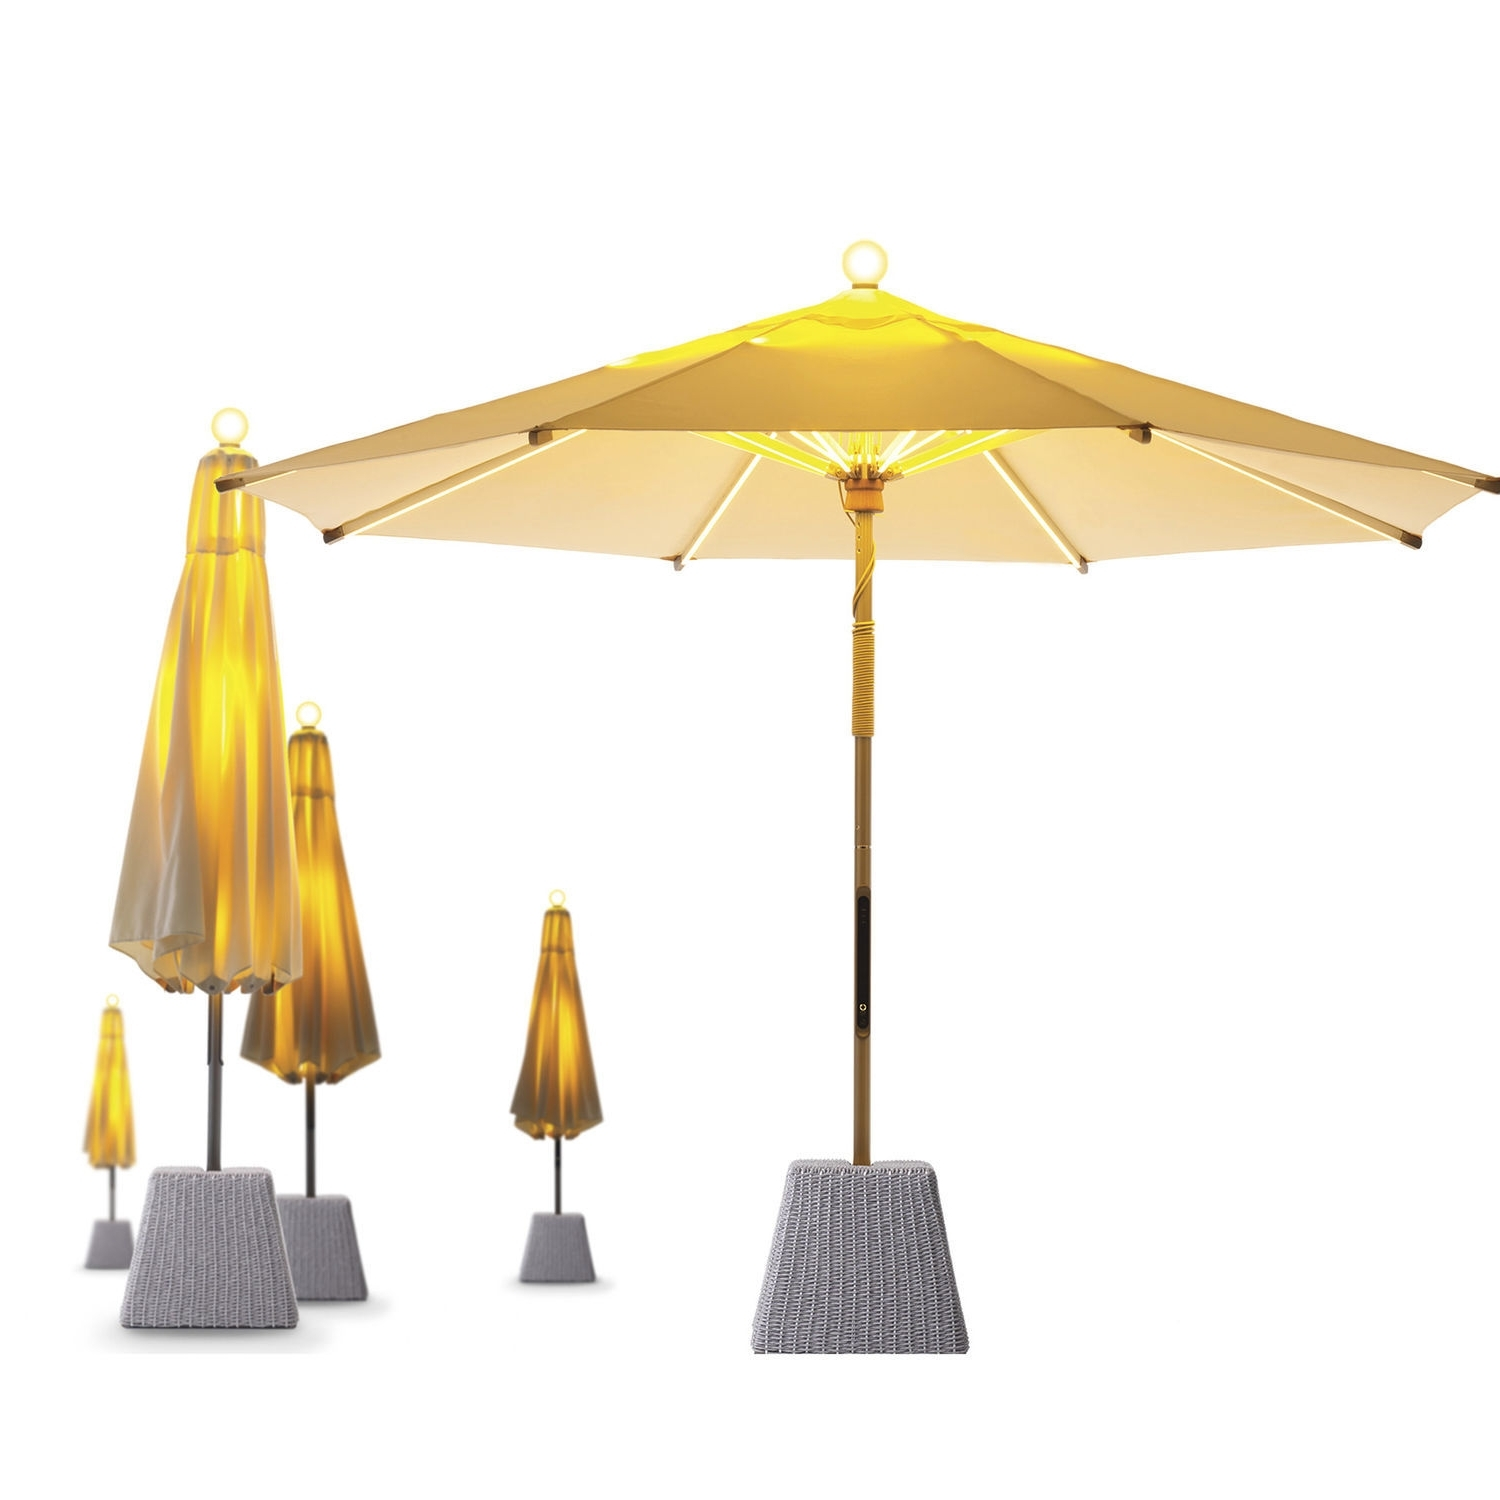 Newest Sunbrella Teak Umbrellas In Commercial Patio Umbrella / Teak / Aluminum / With Heater – Ni (Gallery 8 of 20)